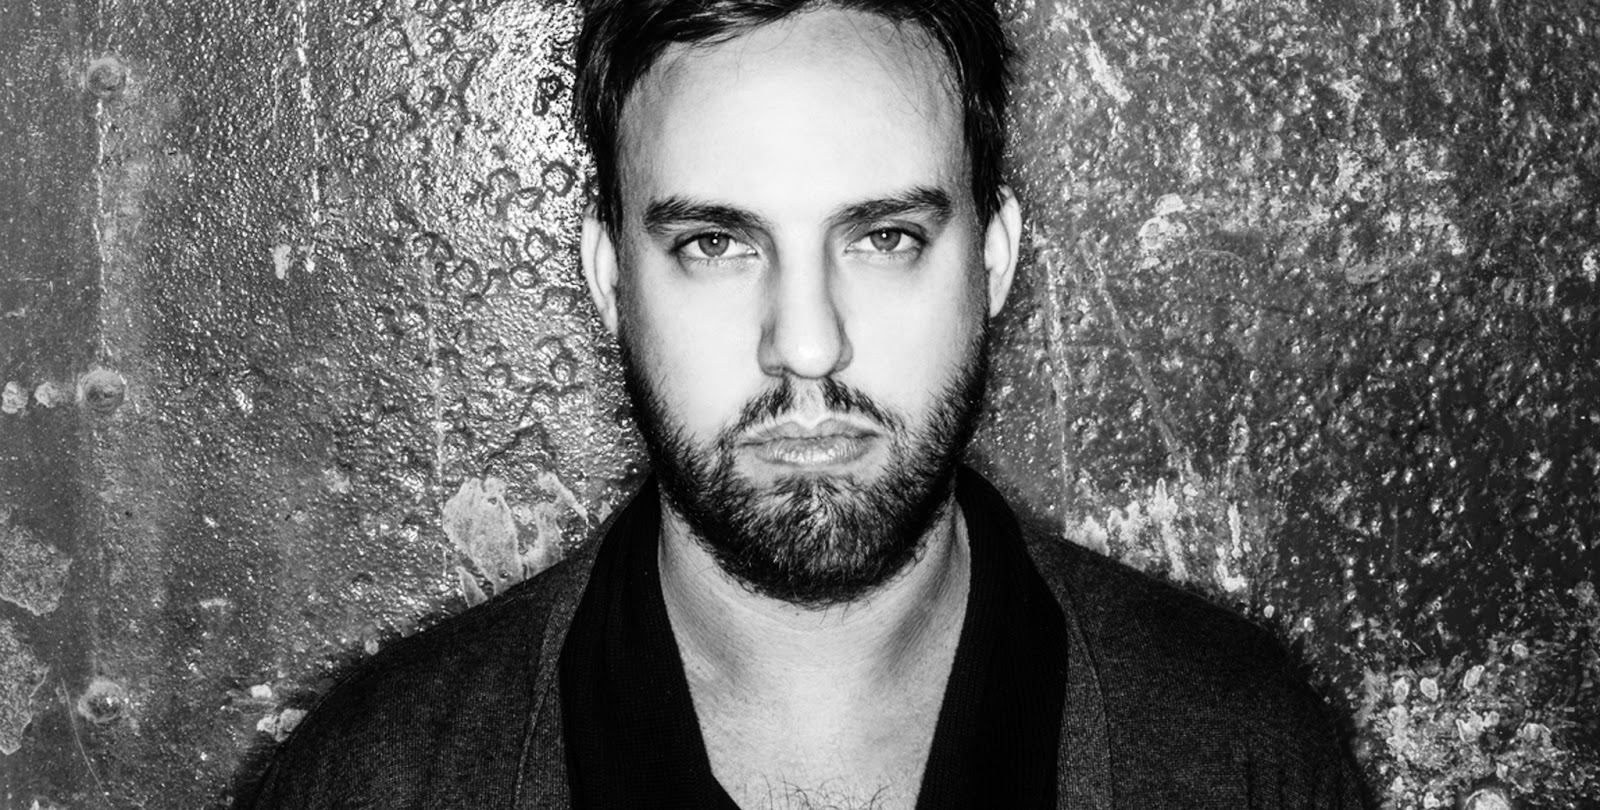 Maetrik - The Reason (Original Mix) The alias of Maceo Plex that demonstrated the US DJ's ability to dwell into darker tech-house, techno tinges, this banger carries heavy bass production.